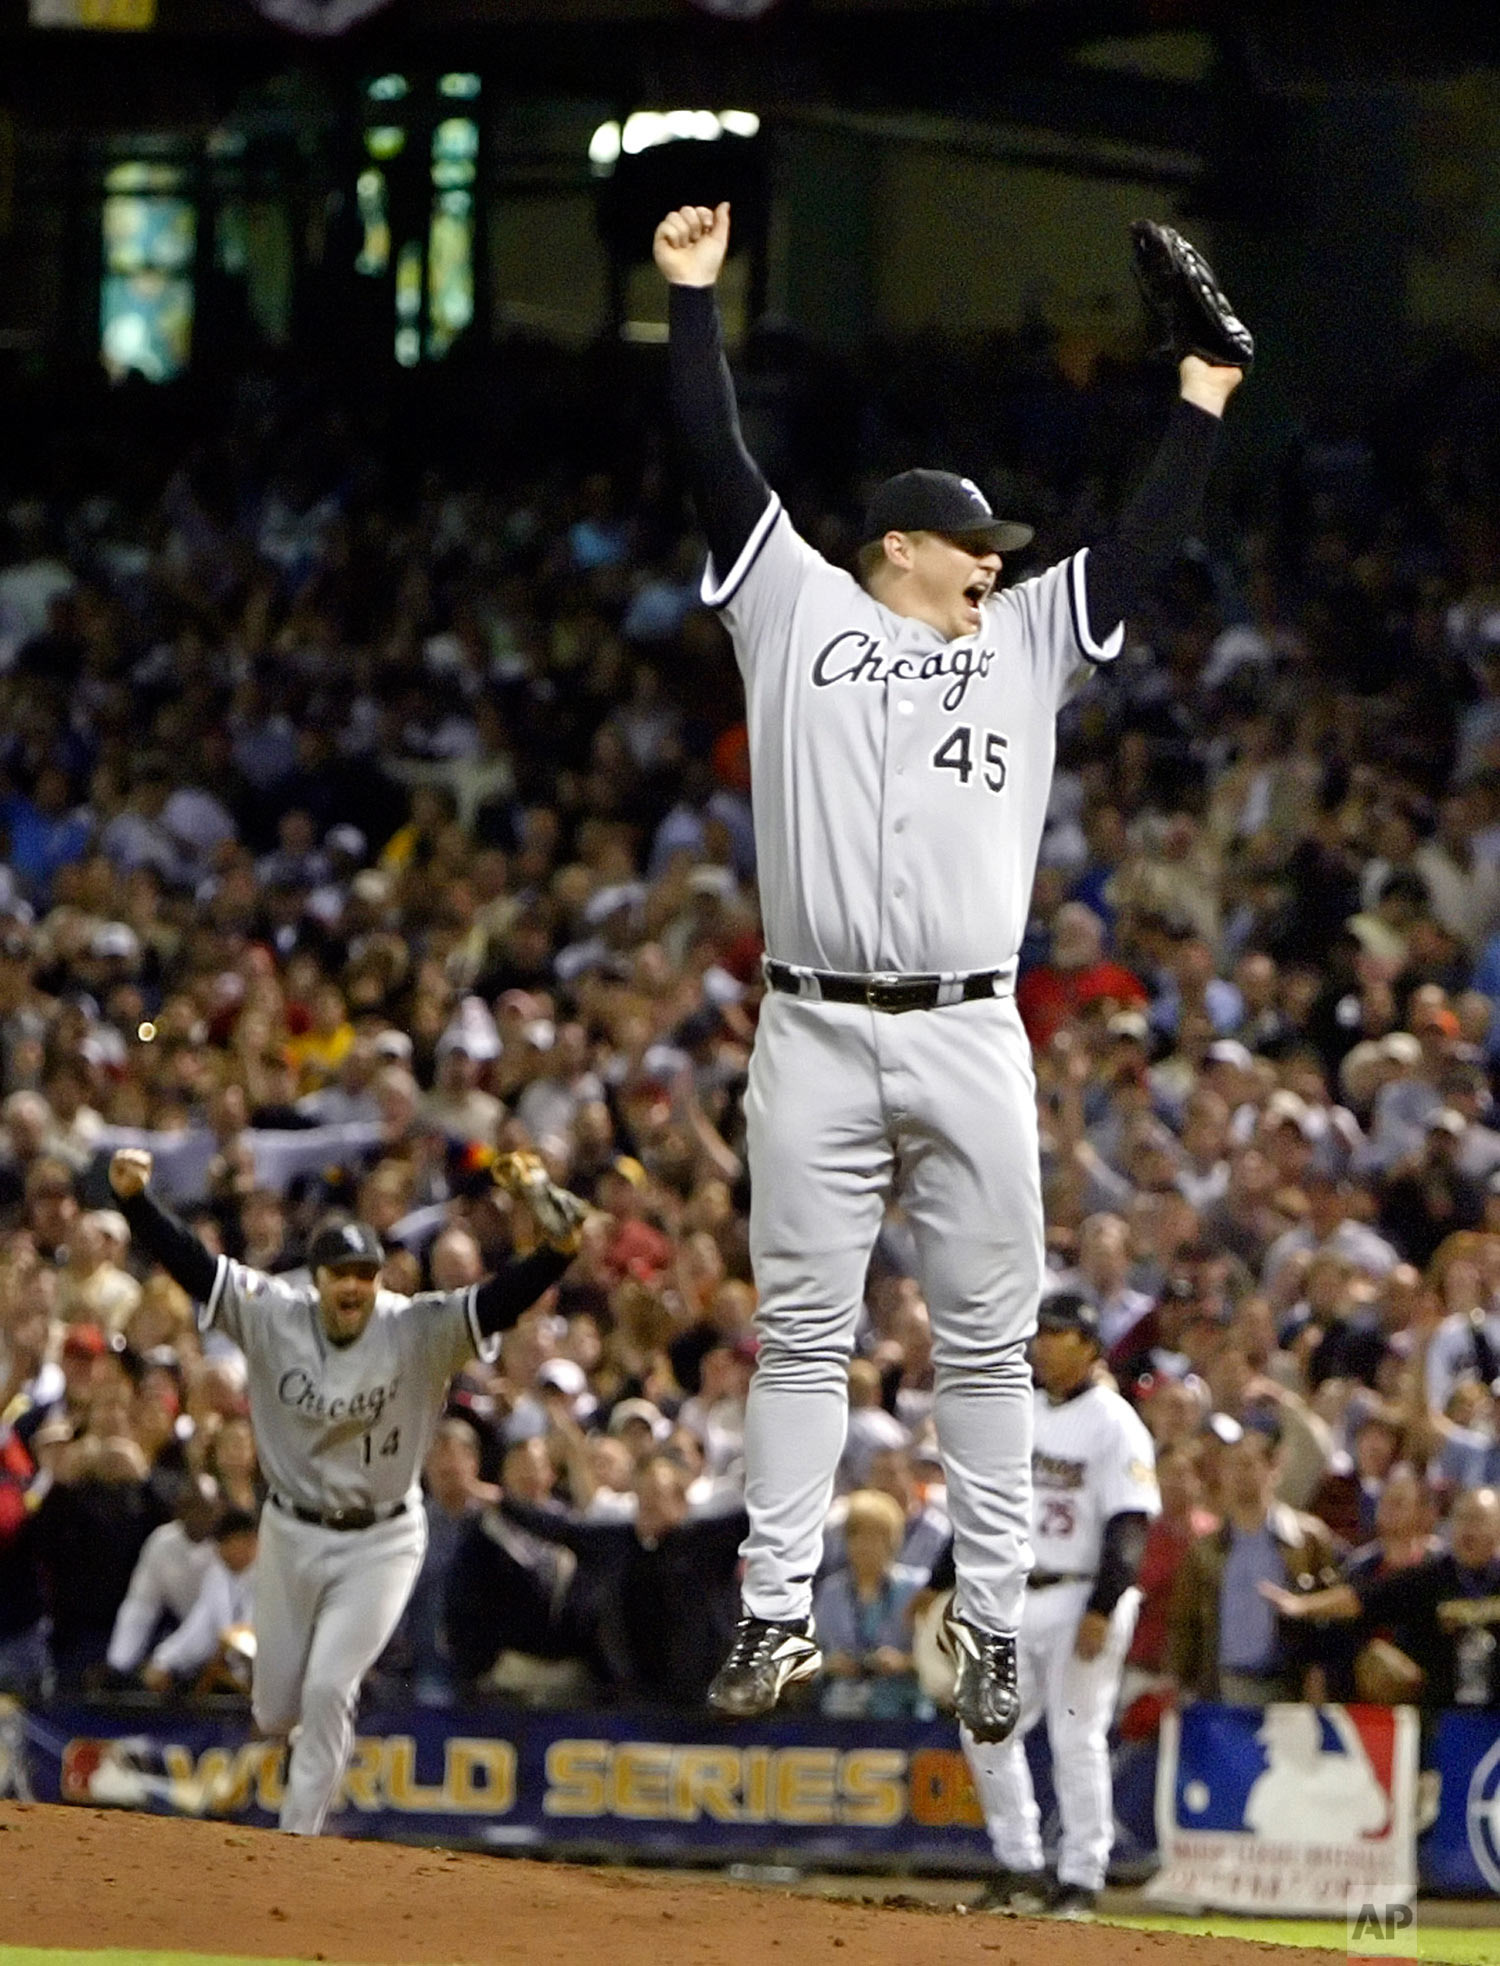 Chicago White Sox pitcher Bobby Jenks (45) and first baseman Paul Konerko (14) start the celebration as Chicago beats the Houston Astros 1-0 to win the World Series Wednesday, Oct. 26, 2005, in Houston. The White Sox won their first World Series since 1917 by sweeping the Astros 4-0 in the best-of-seven games series. (AP Photo/Eric Gay)